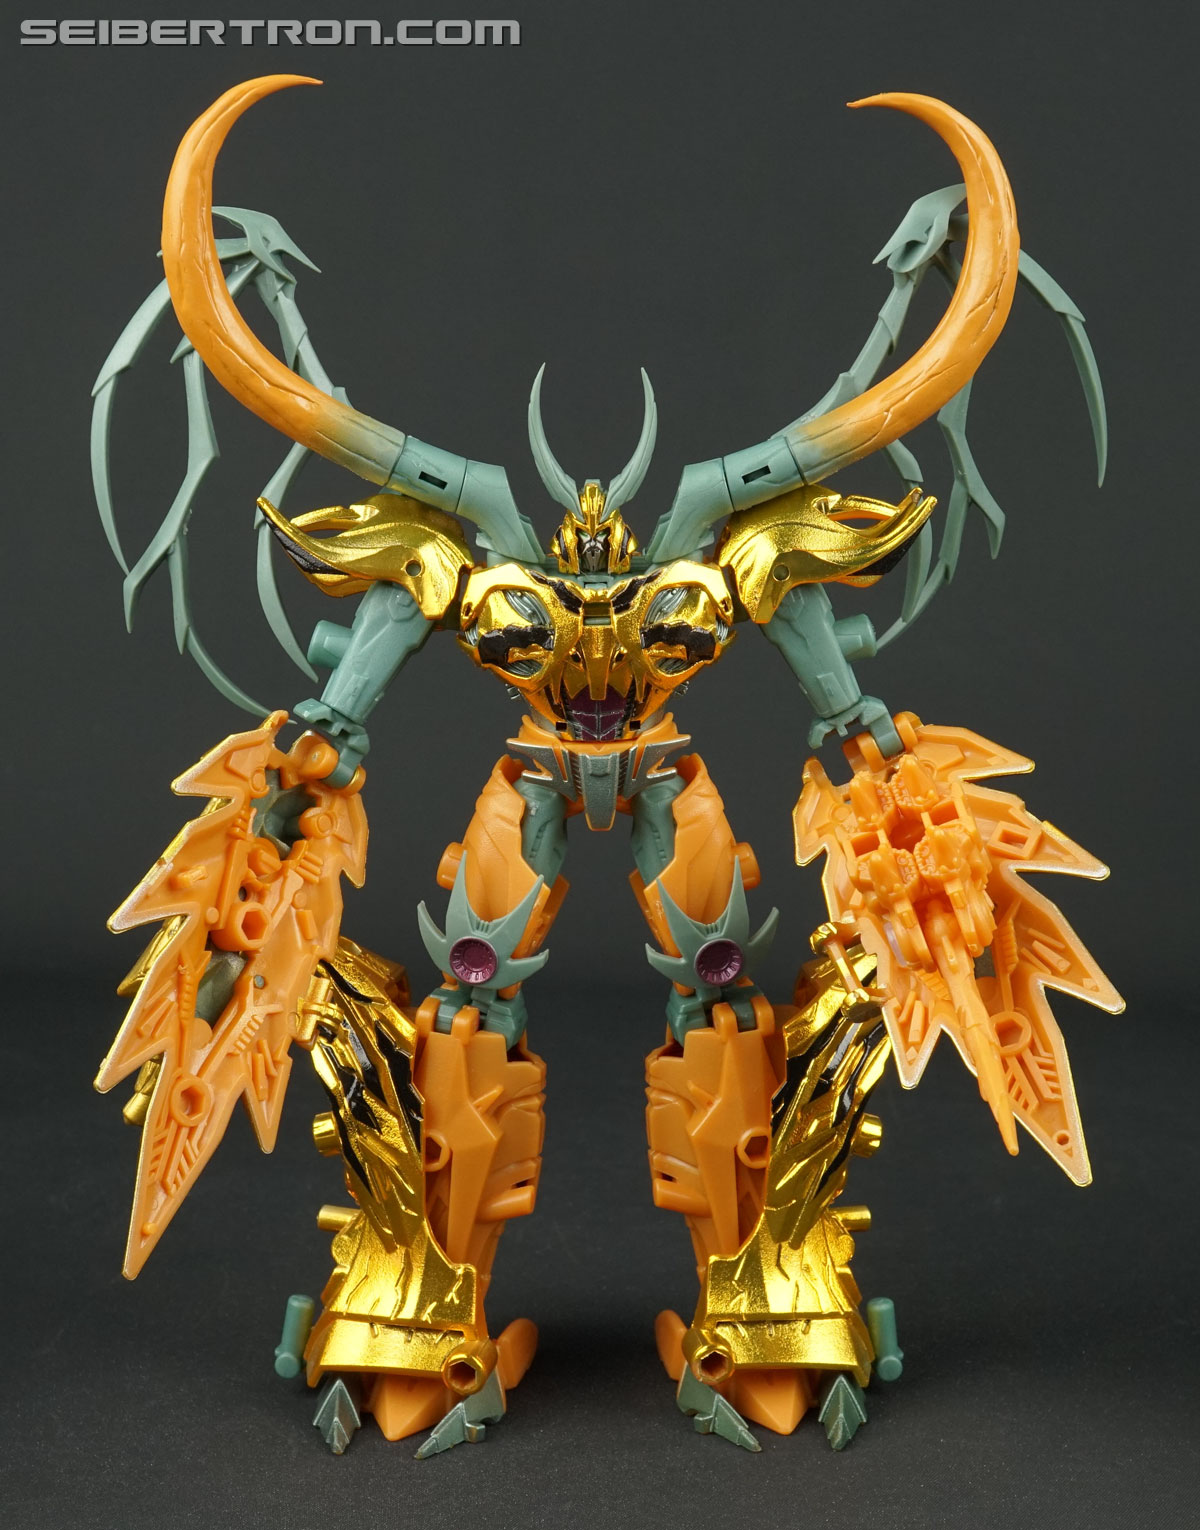 Transformers Arms Micron Gaia Unicron (Image #97 of 201)